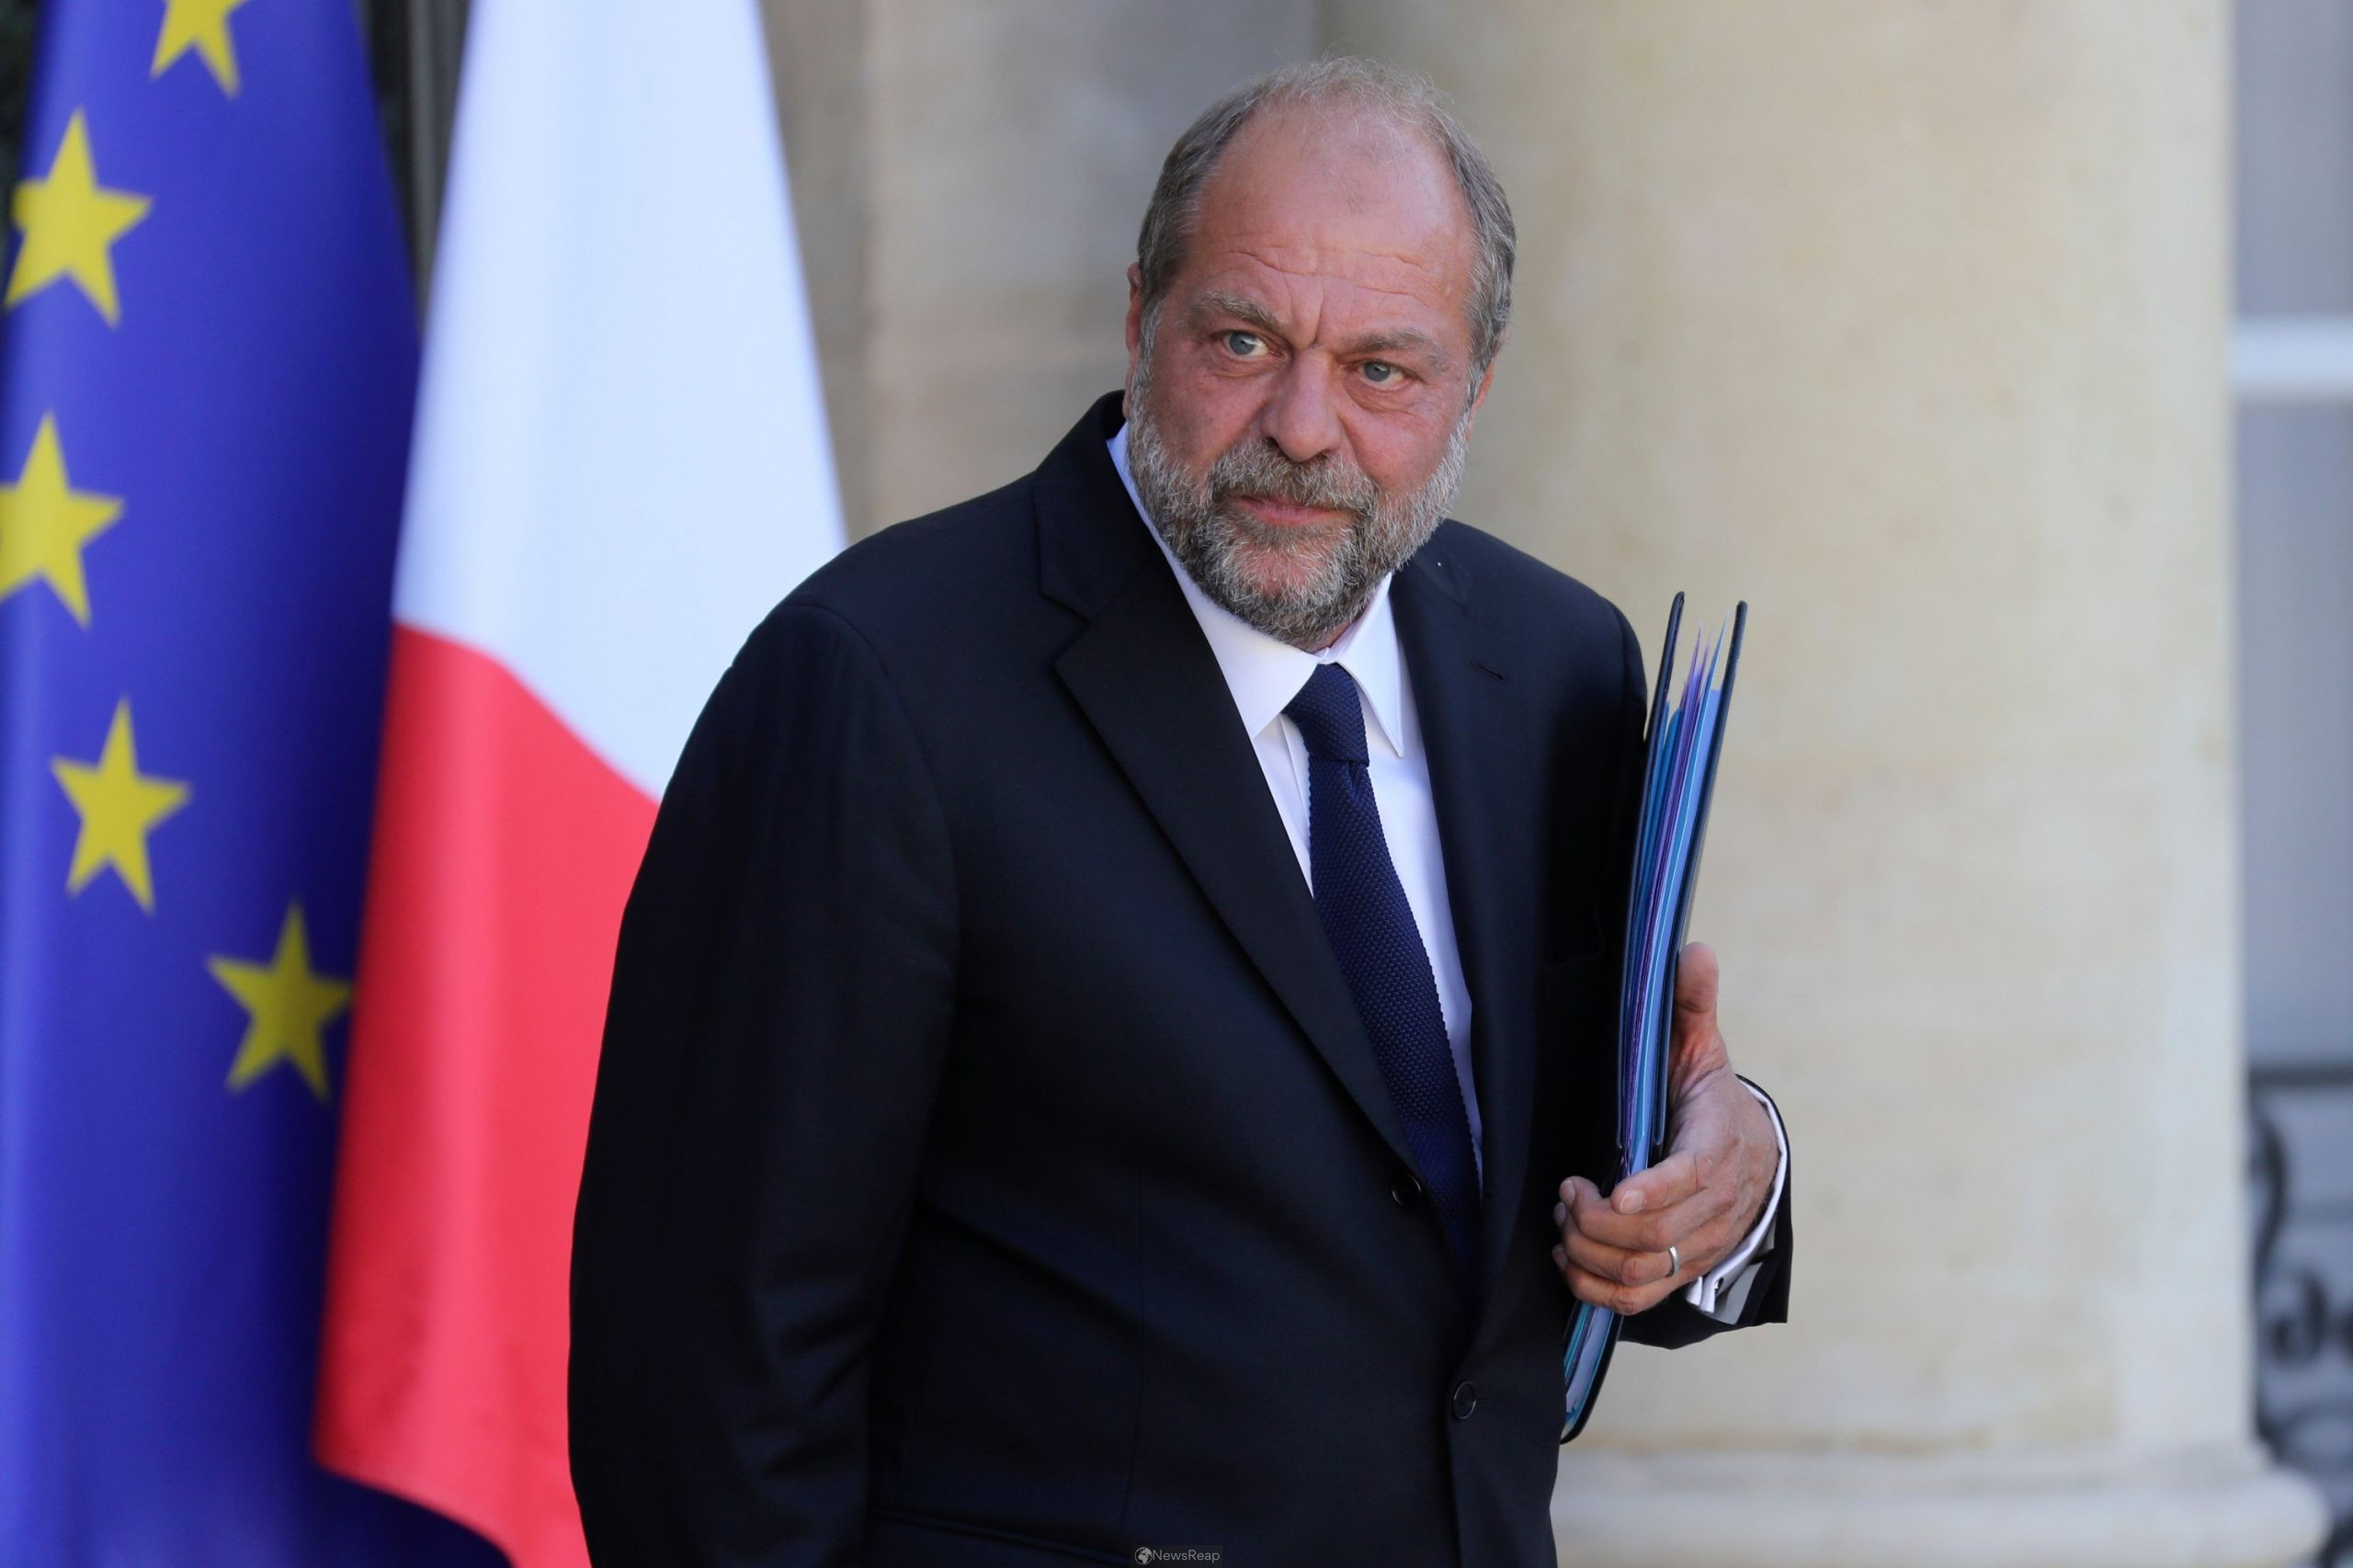 Prosecutor to open investigation into French justice minister